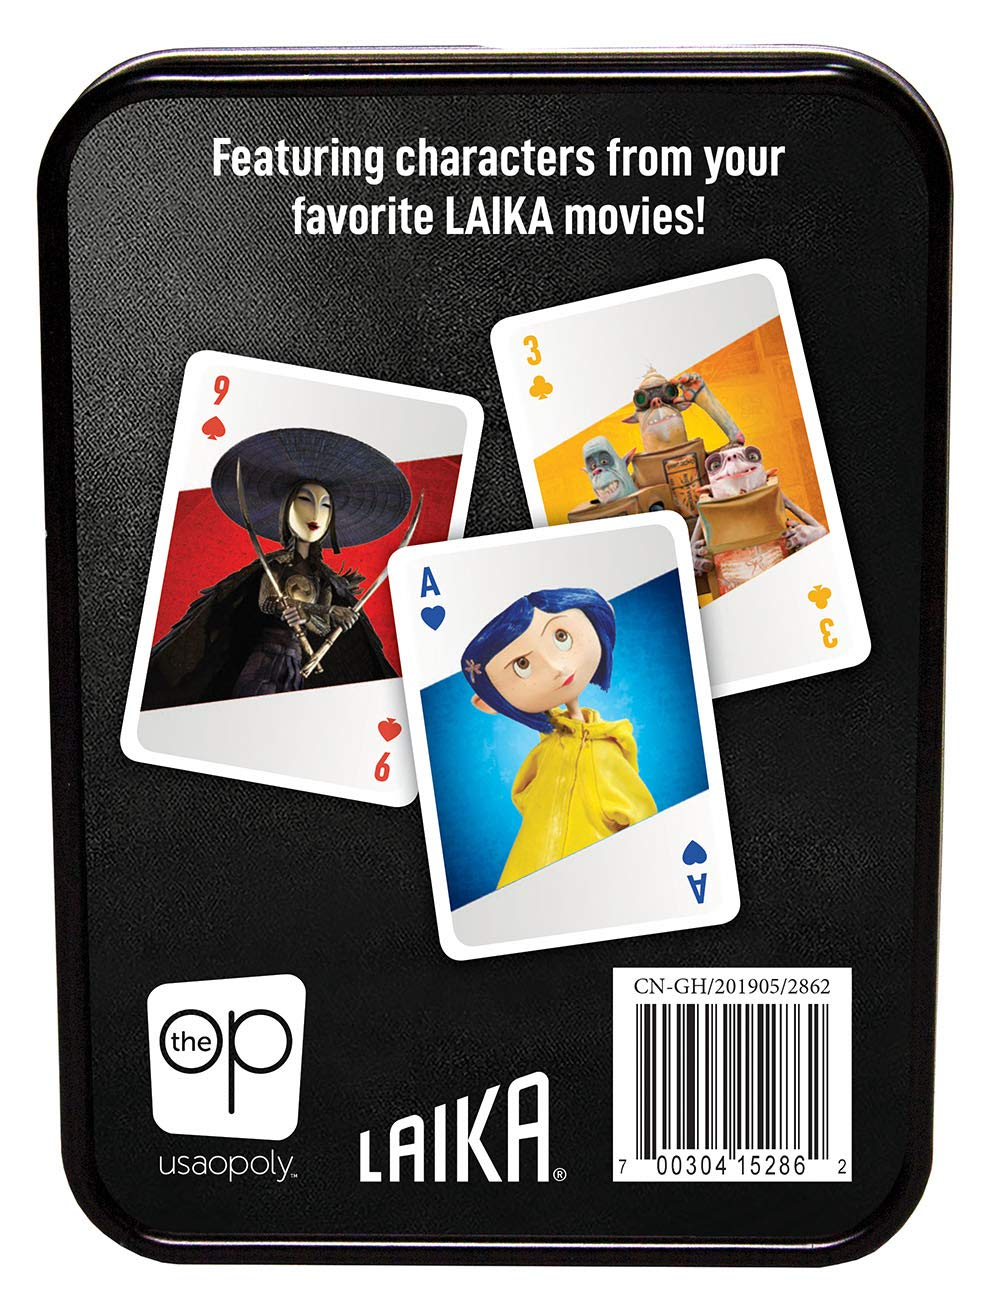 The Boxtrolls Deck of Cards Featuring Laika Studios Characters from Coraline USAOPOLY Laika Playing Card Set and Missing Link Collectible Tin Container ParaNorman Kubo and The Two Strings